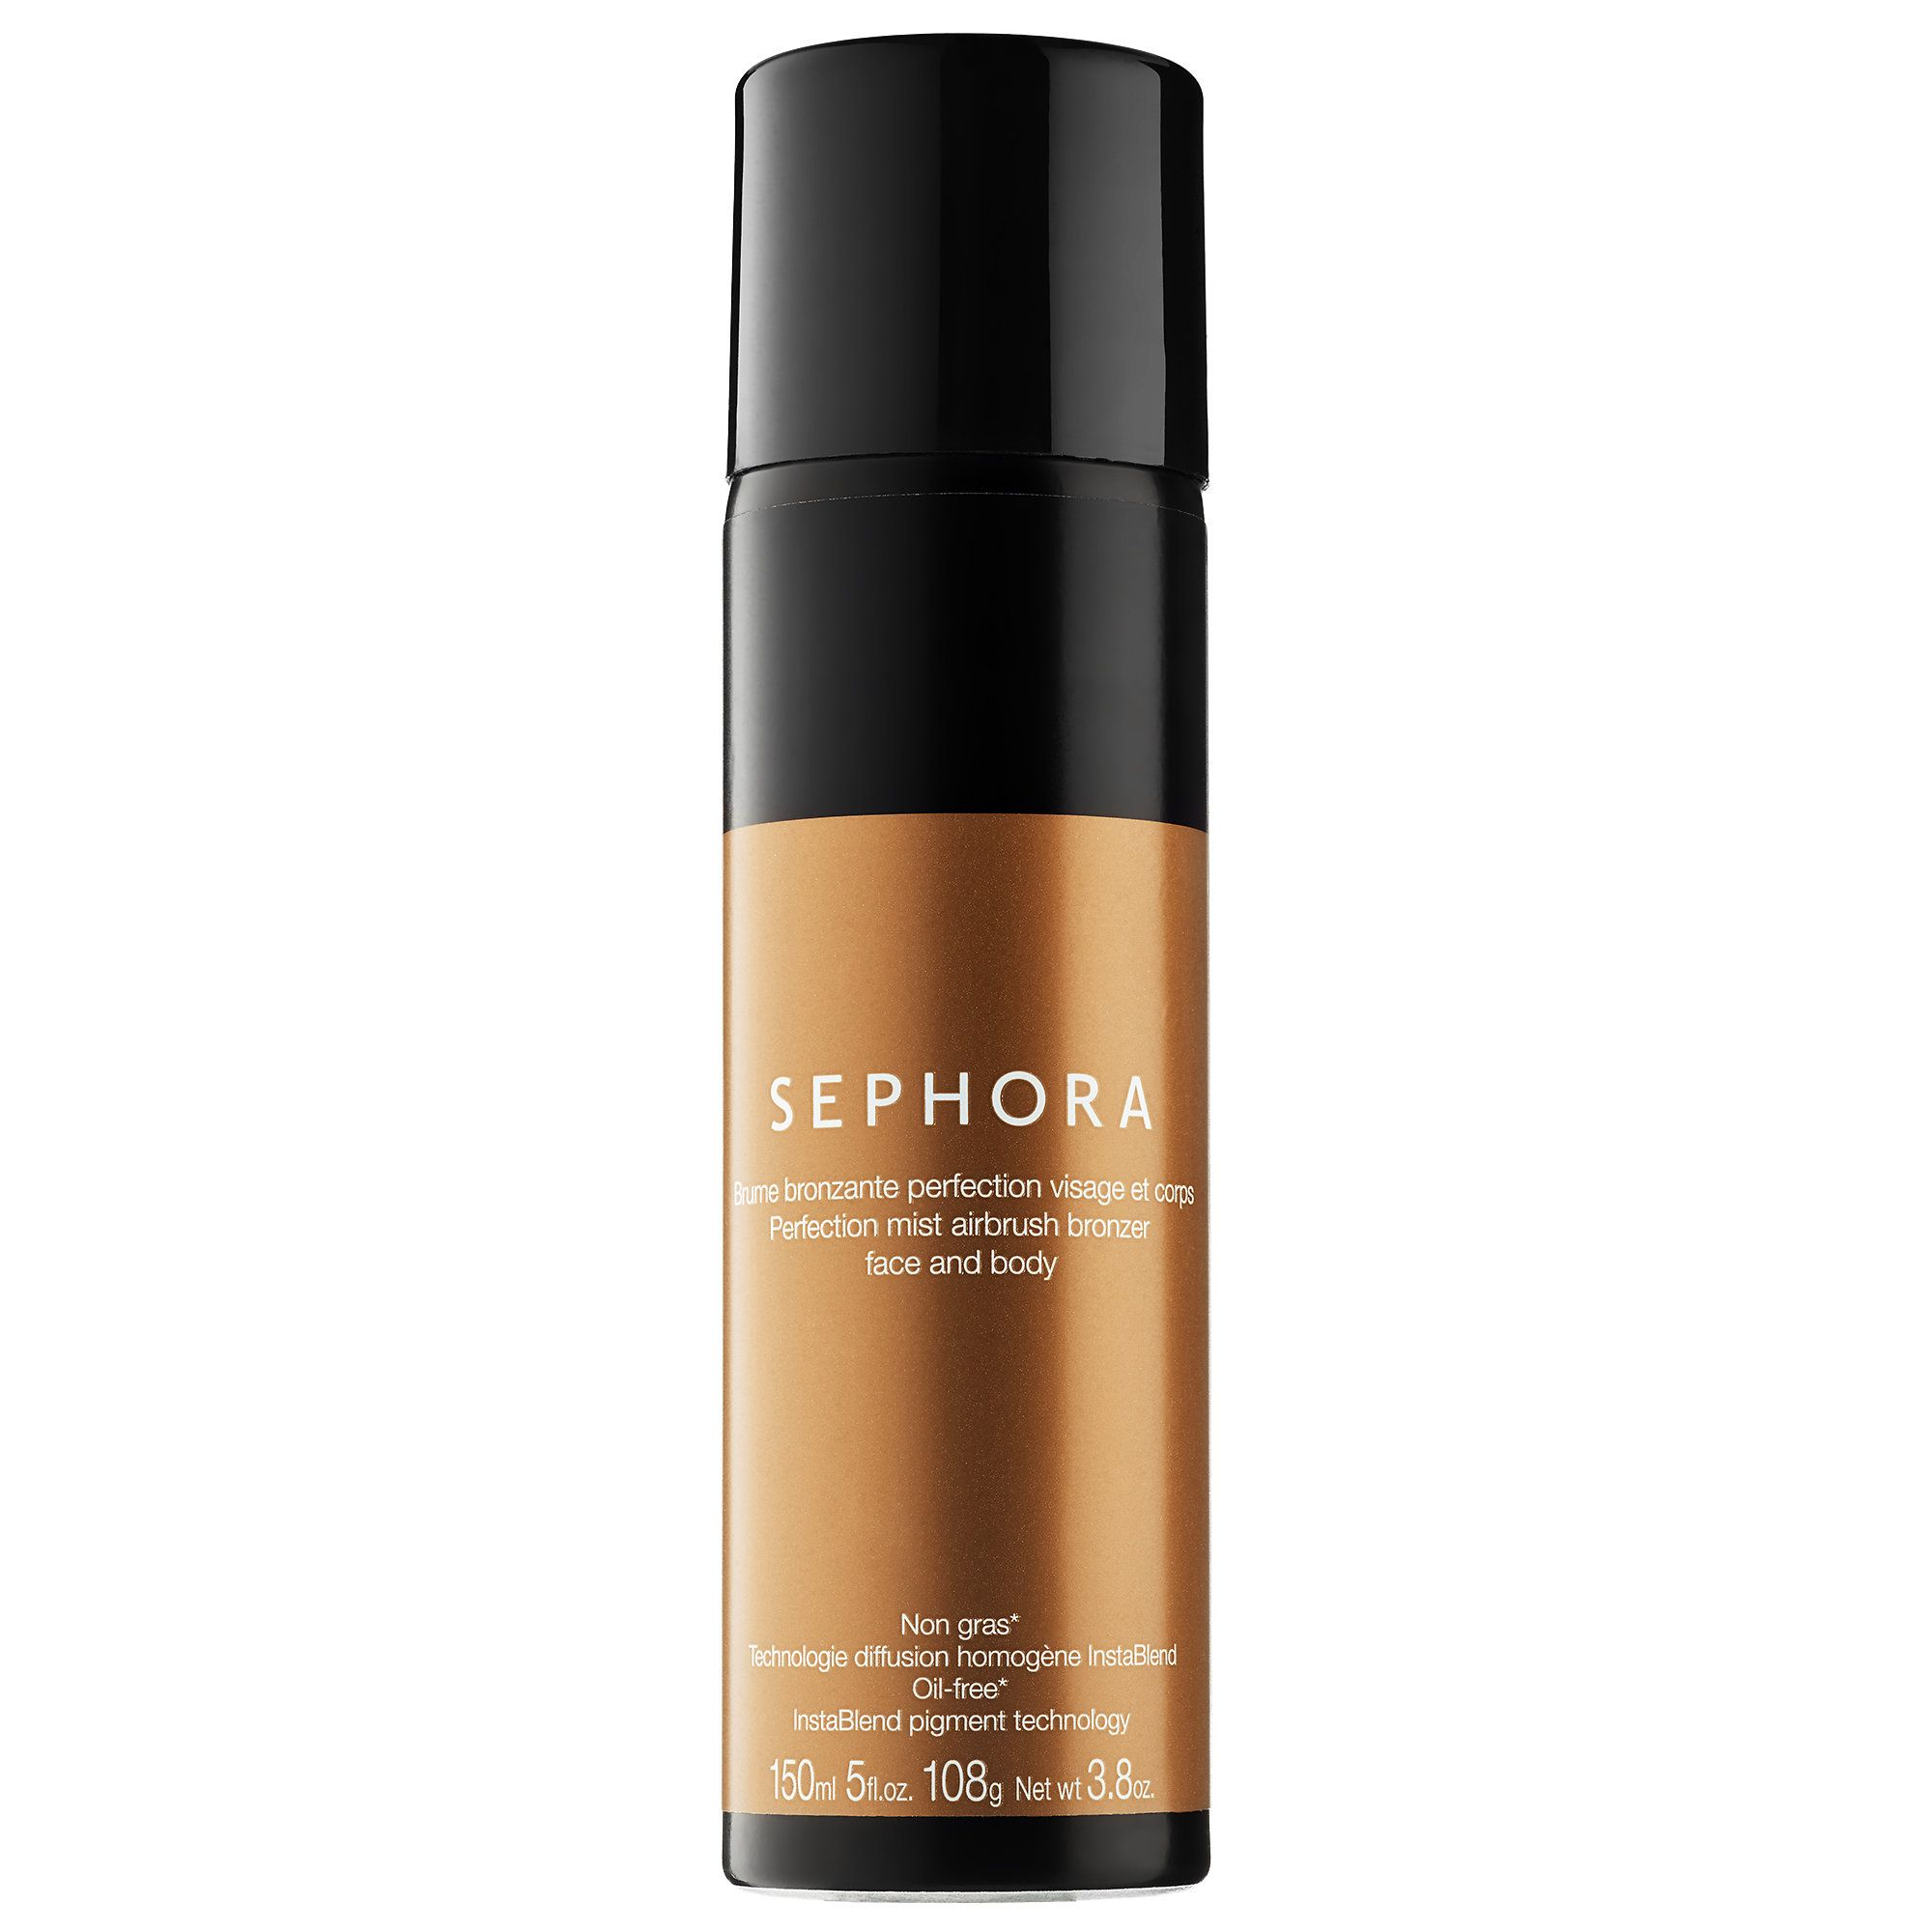 Perfection Mist Airbrush Bronzer Face and Body SEPHORA